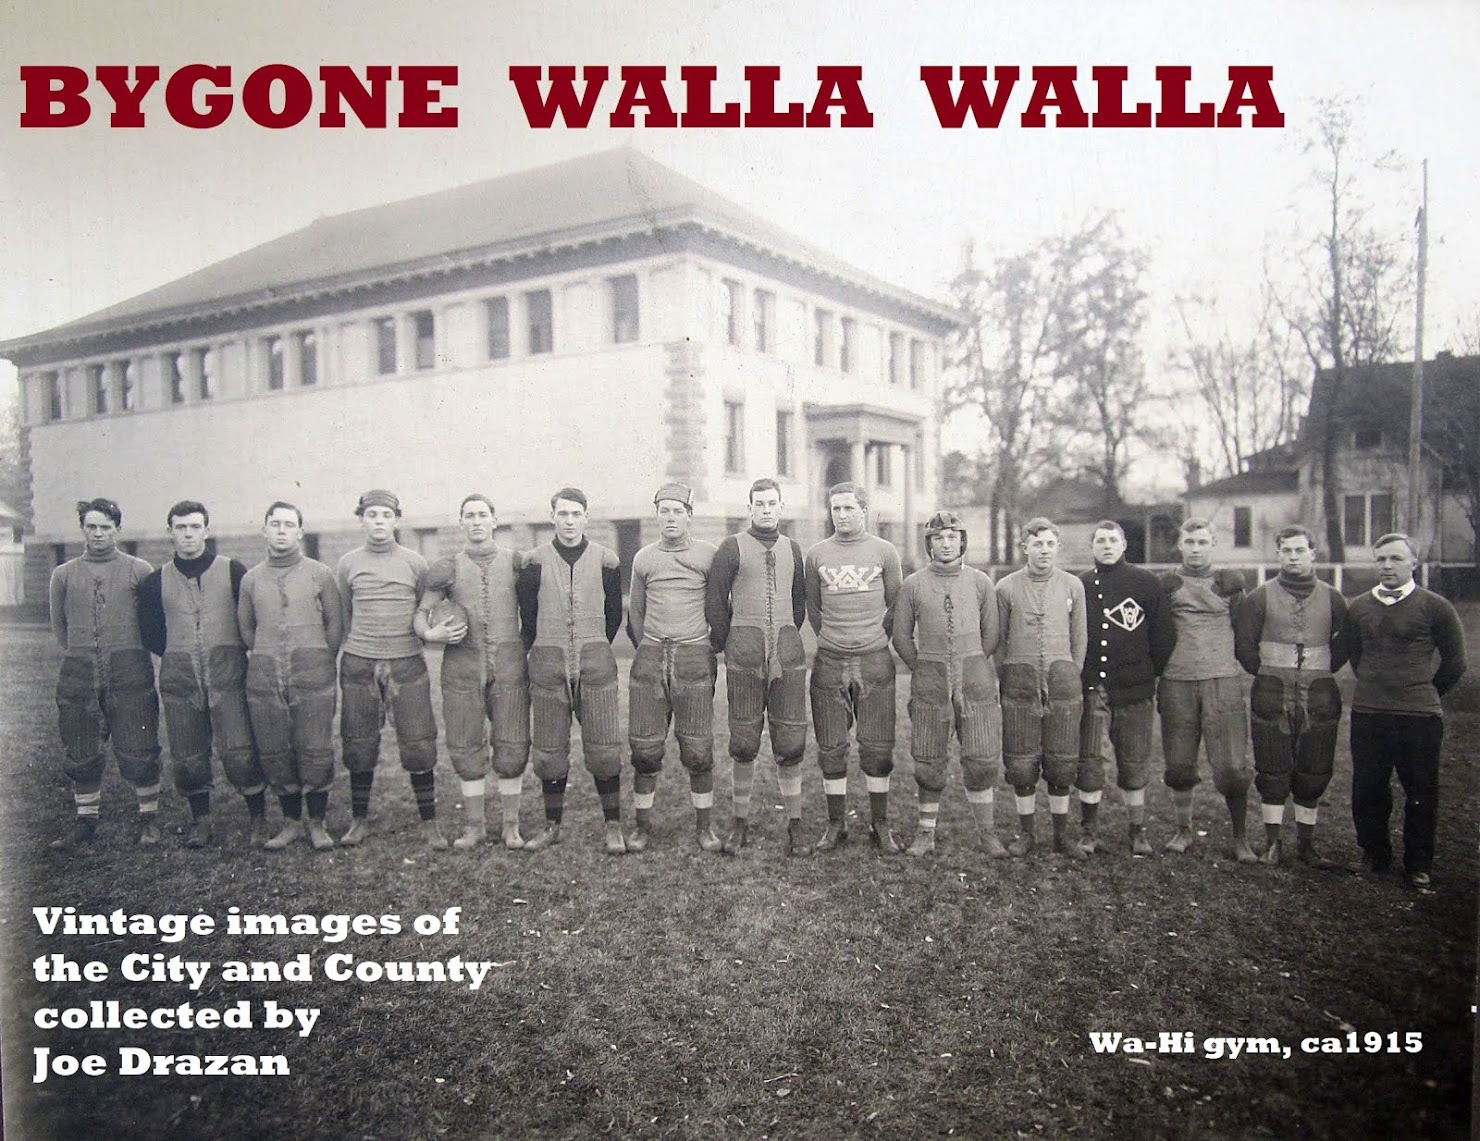 walla walla county dating Walla walla county jail inmate search, arrest records, inmate roster, booking information for walla walla,, washington look up any inmate in america on jailexchangecom.